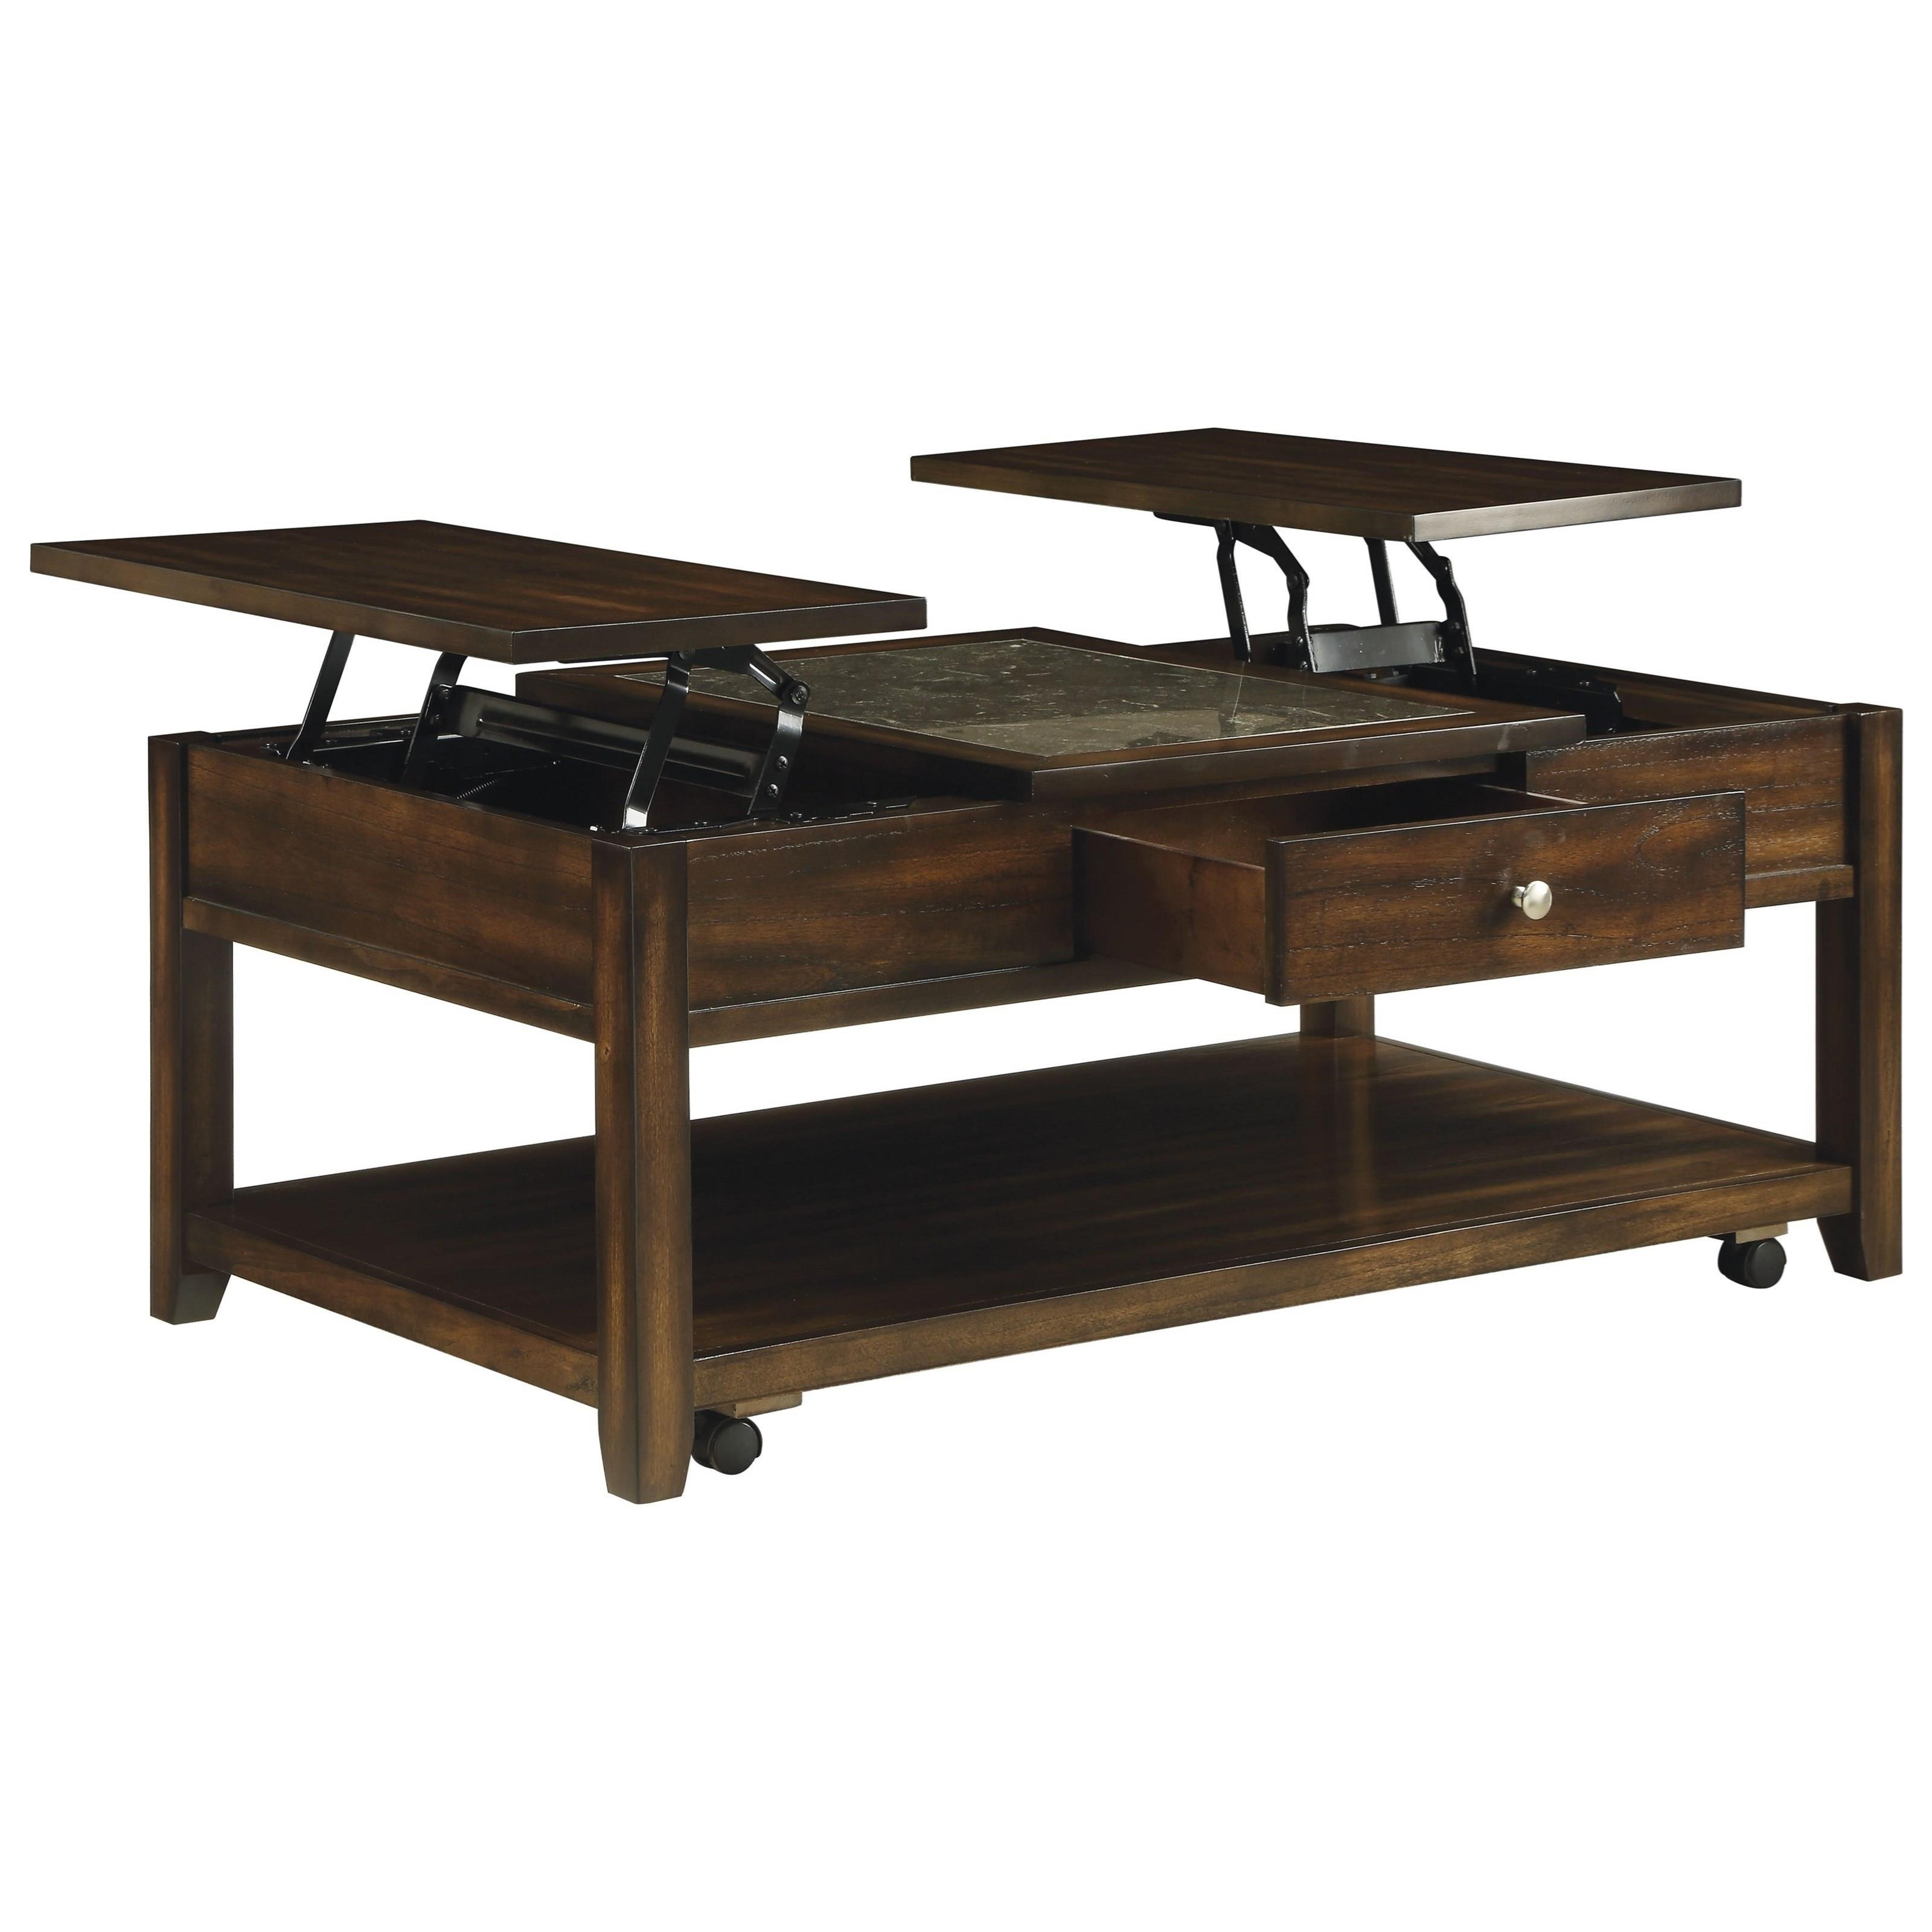 Cilnia Coffee Table by Acme Furniture at A1 Furniture & Mattress